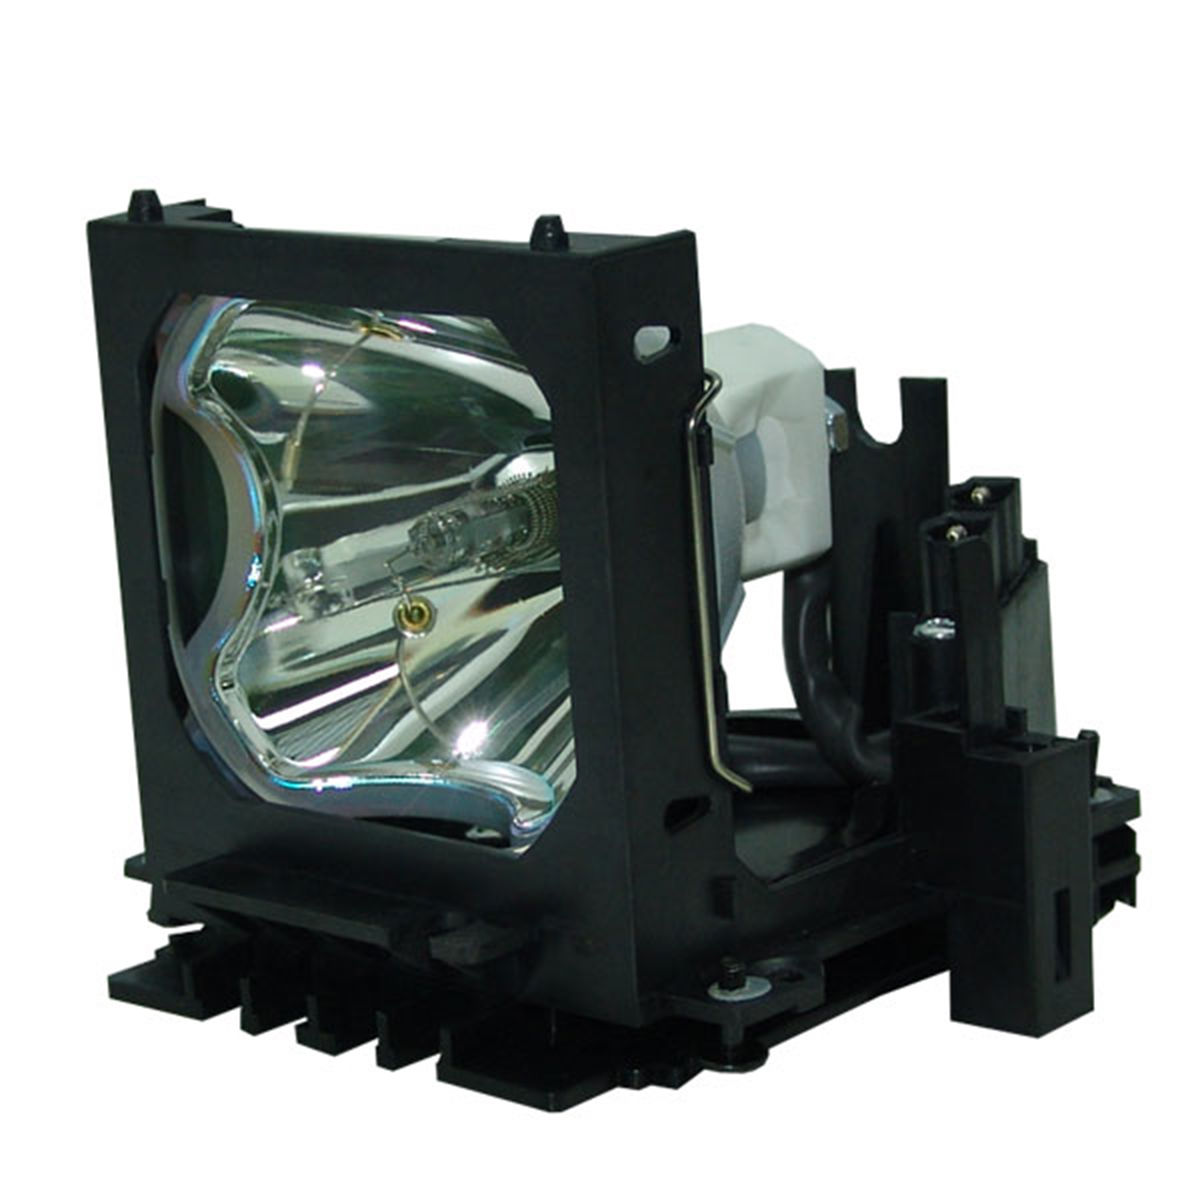 Projector Lamp Bulb DT00531 for HITACHI CP-X880 CP-X885 with housing  free shipping dt00531 compatible projector lamp for use in hitachi cp x880 cp x885 cp x938 projector